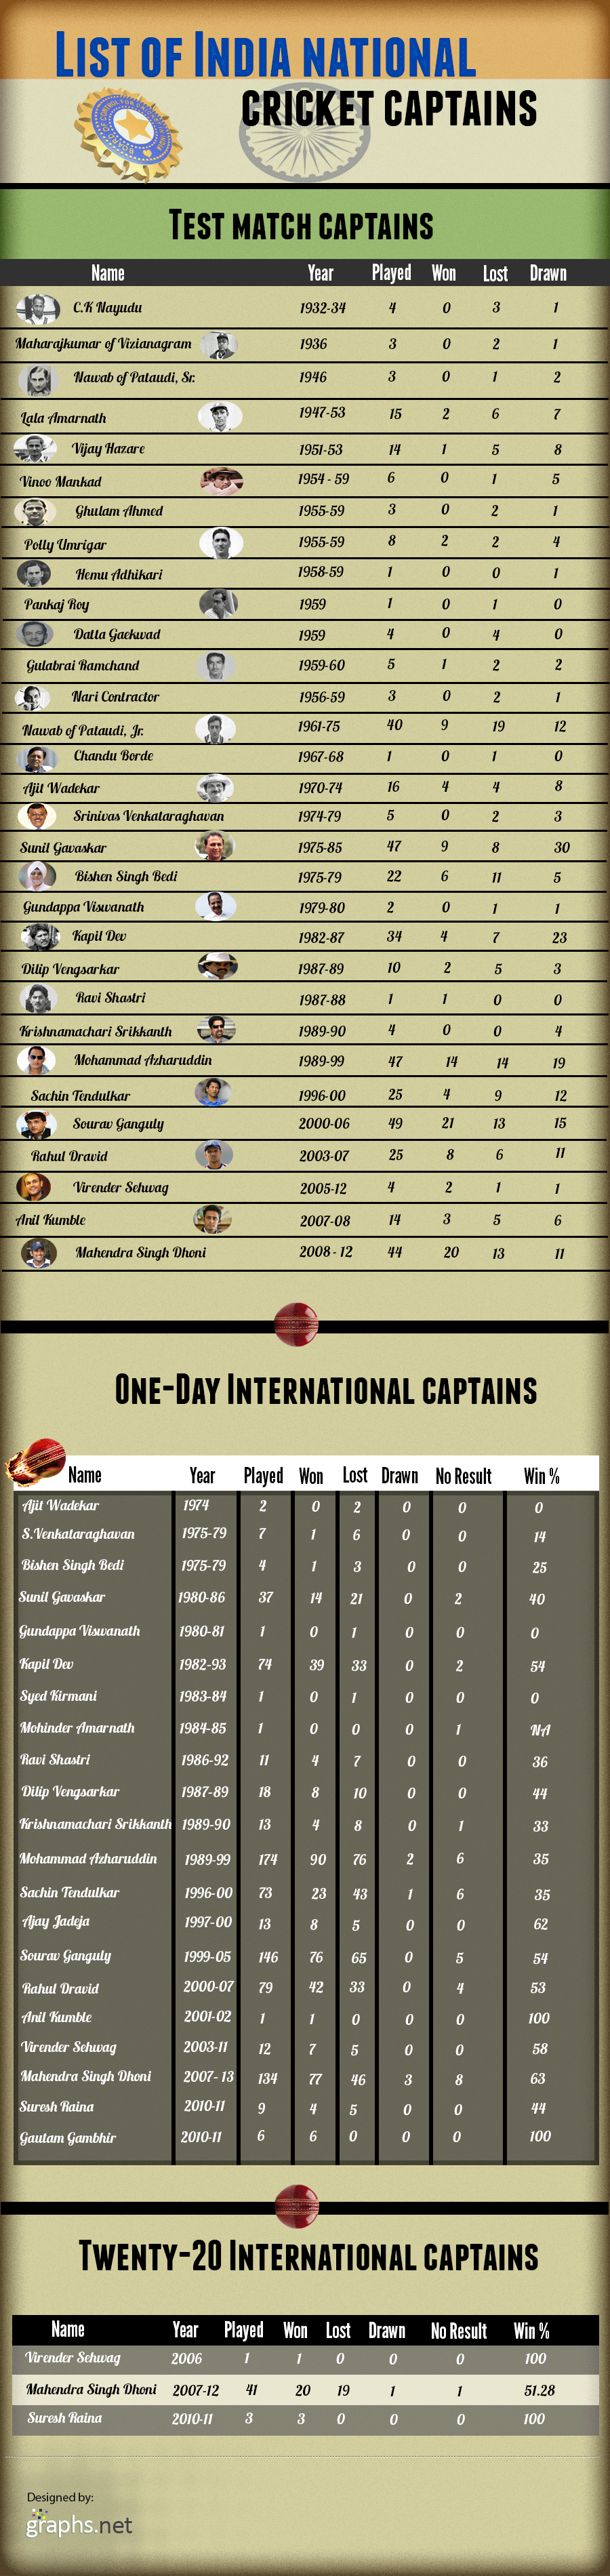 List Of Indian International Cricket Captains List Indian International Cricket Captains Sports Infographics World Cricket Cricket Quotes Test Cricket